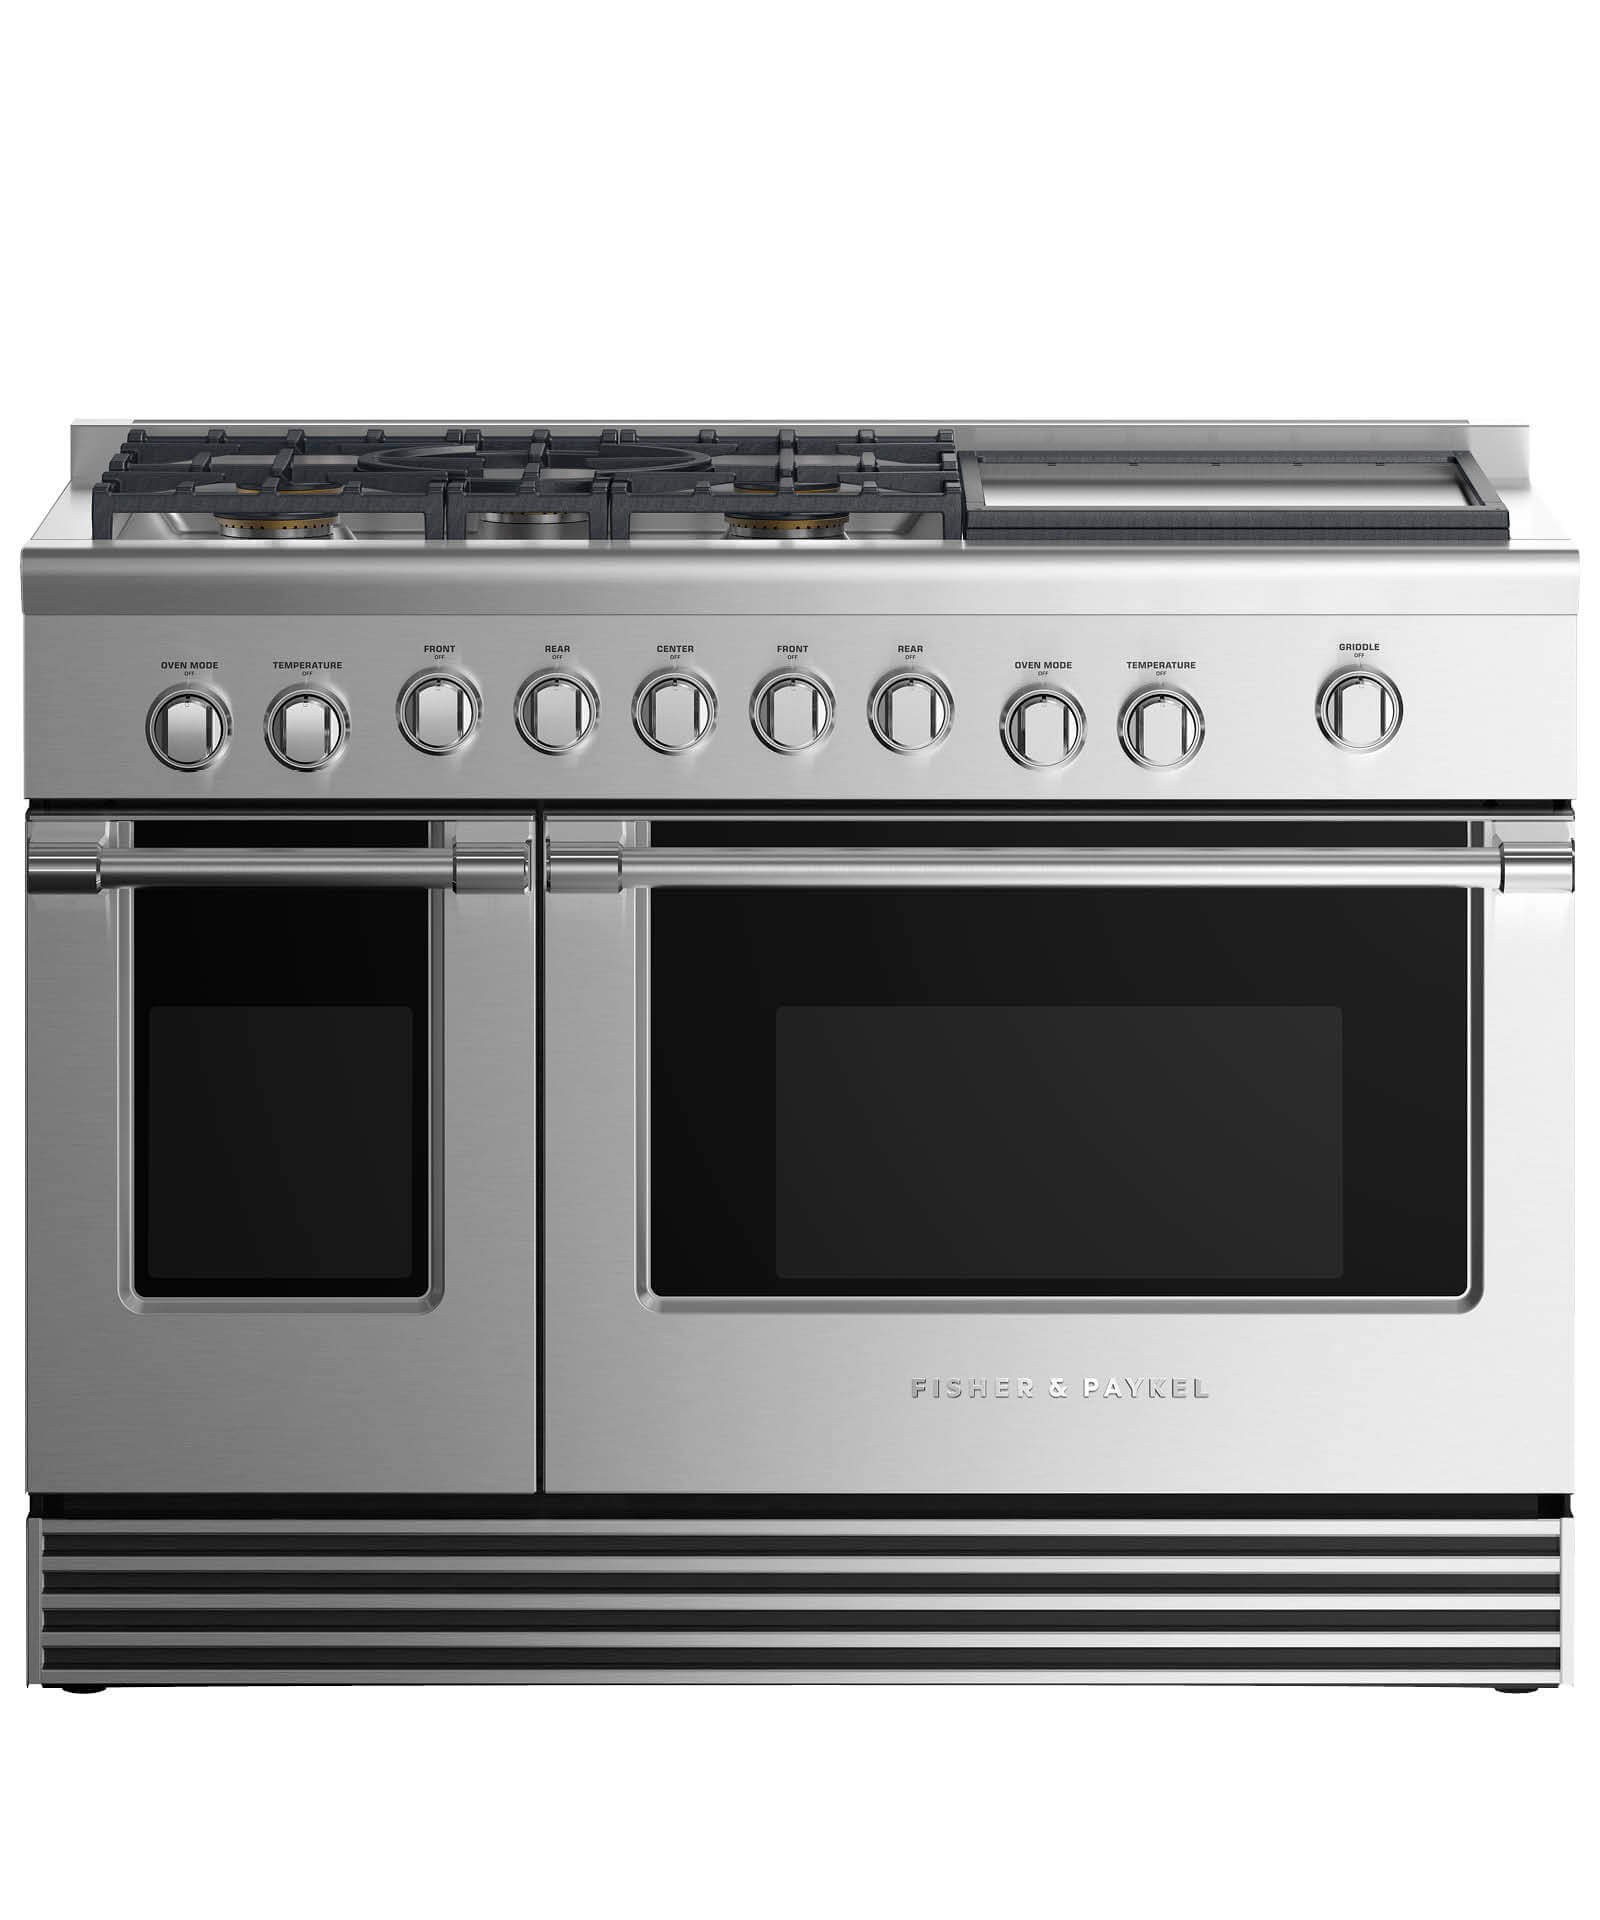 "Fisher and Paykel Gas Range 48"", 5 Burners with Griddle"